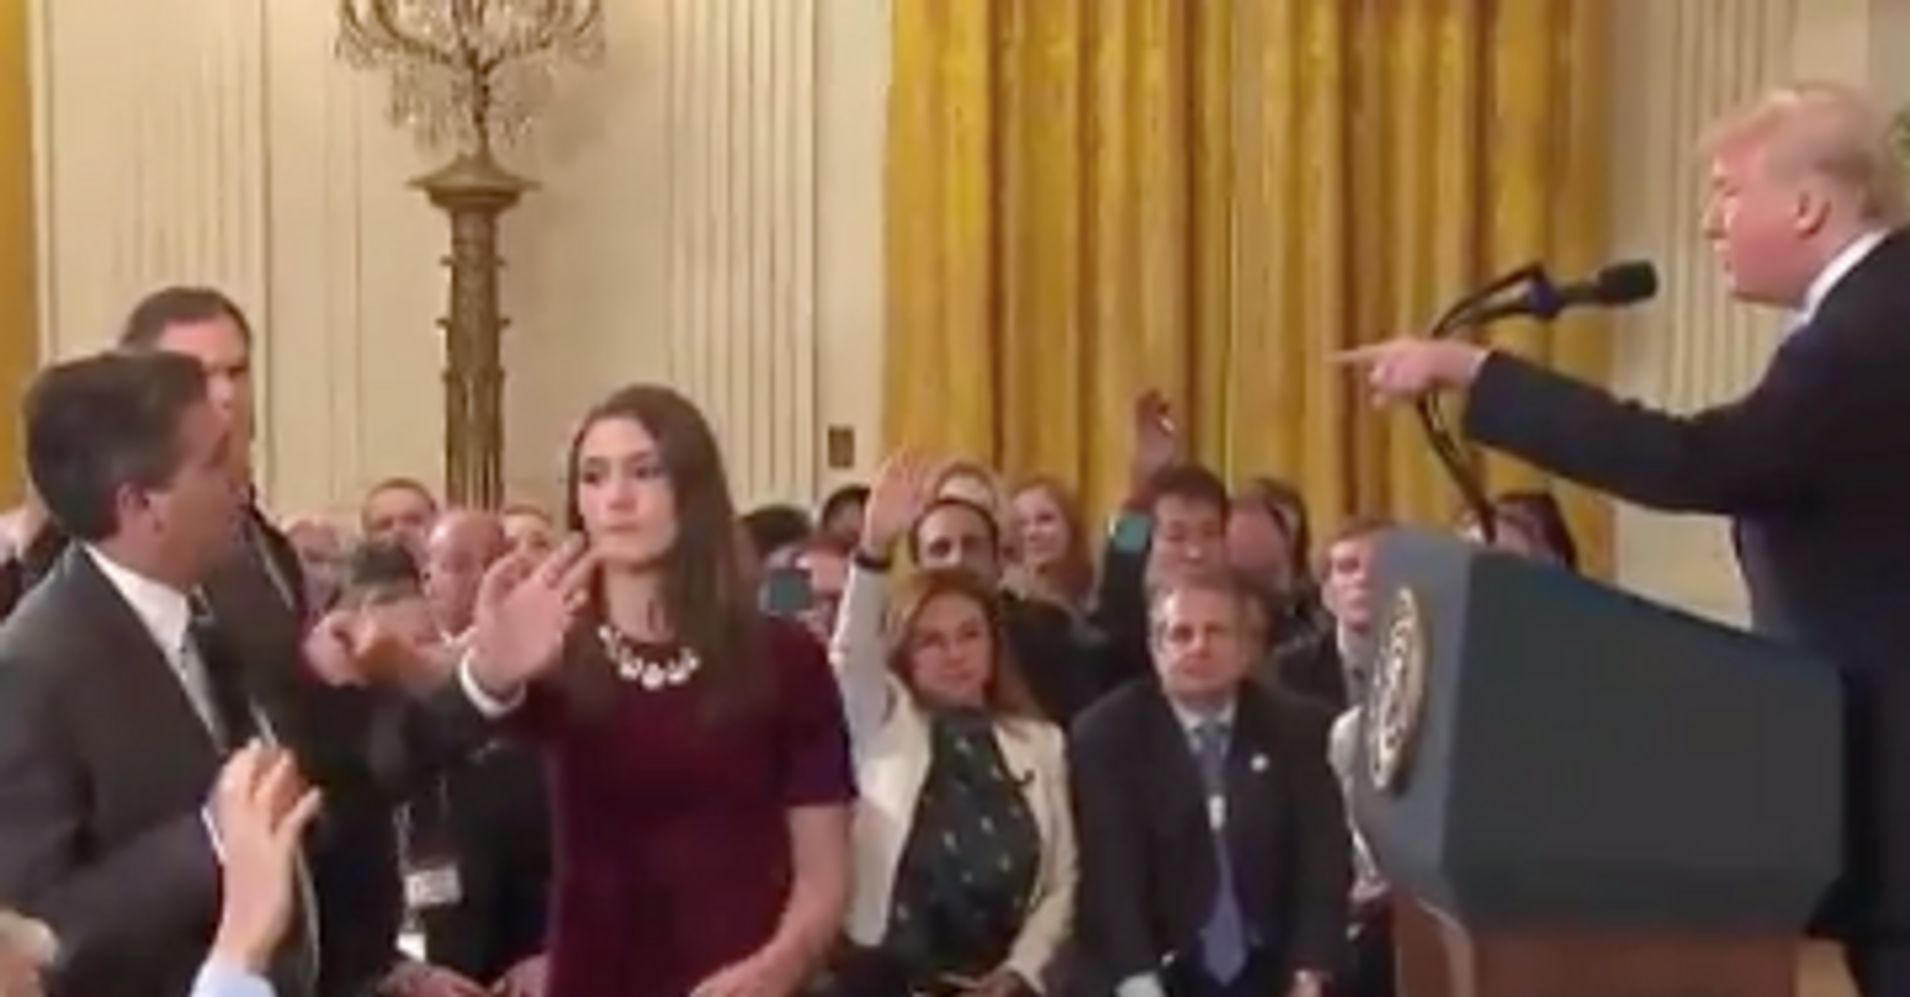 Donald Trump Rips Into CNN's Jim Acosta: 'You Are A Rude, Terrible Person'